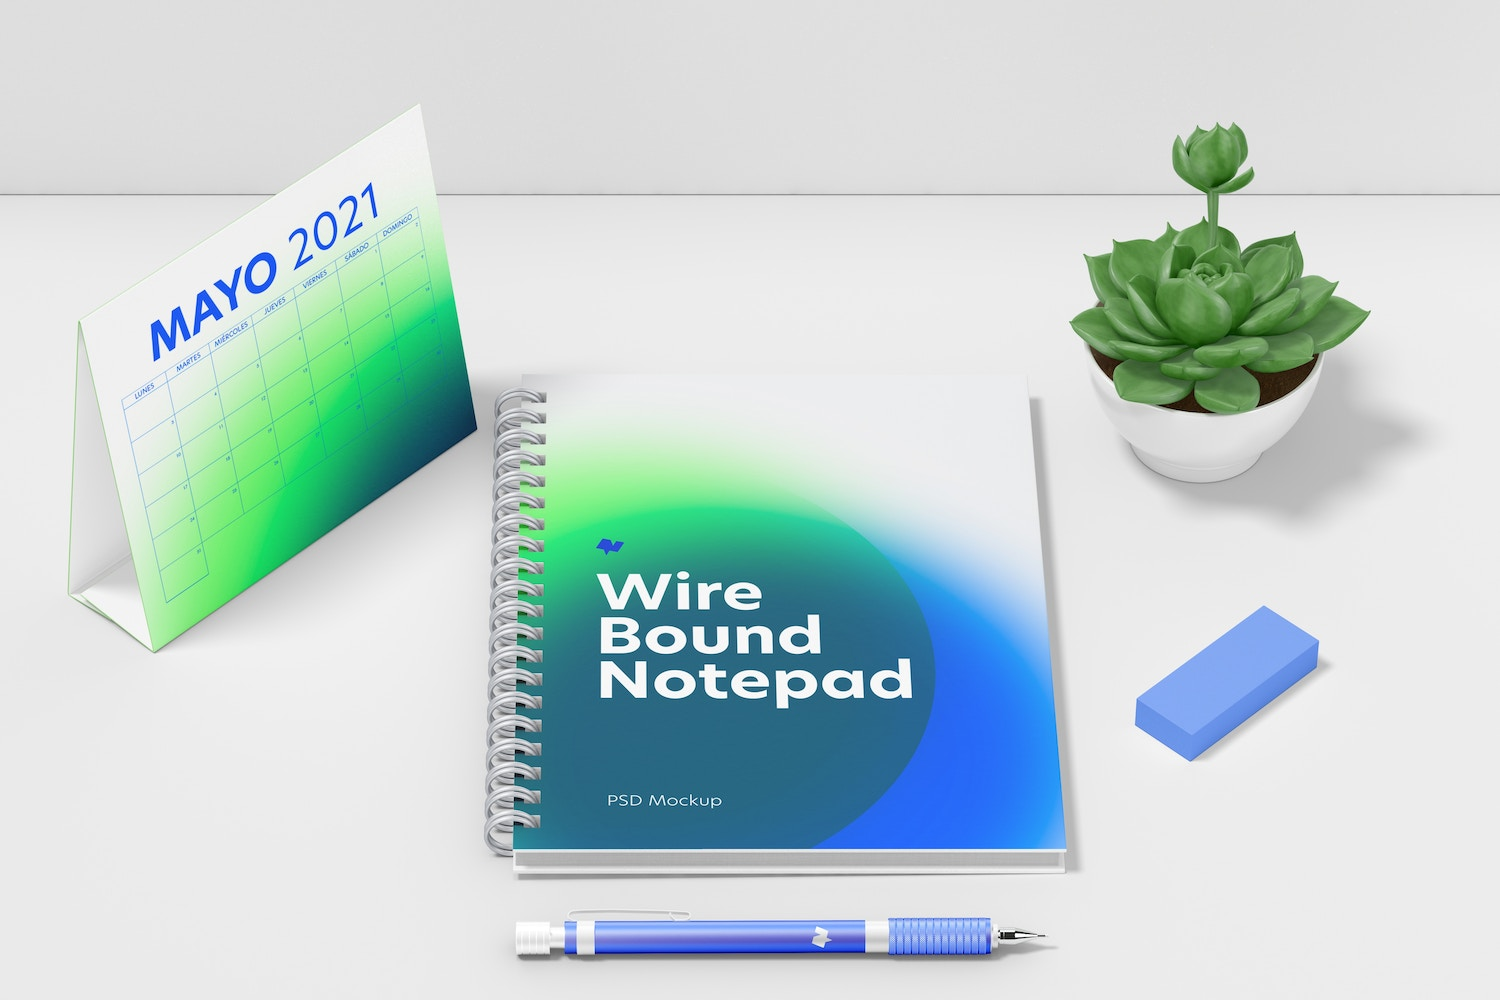 Wire Bound Notepad Scene Mockup, Top View